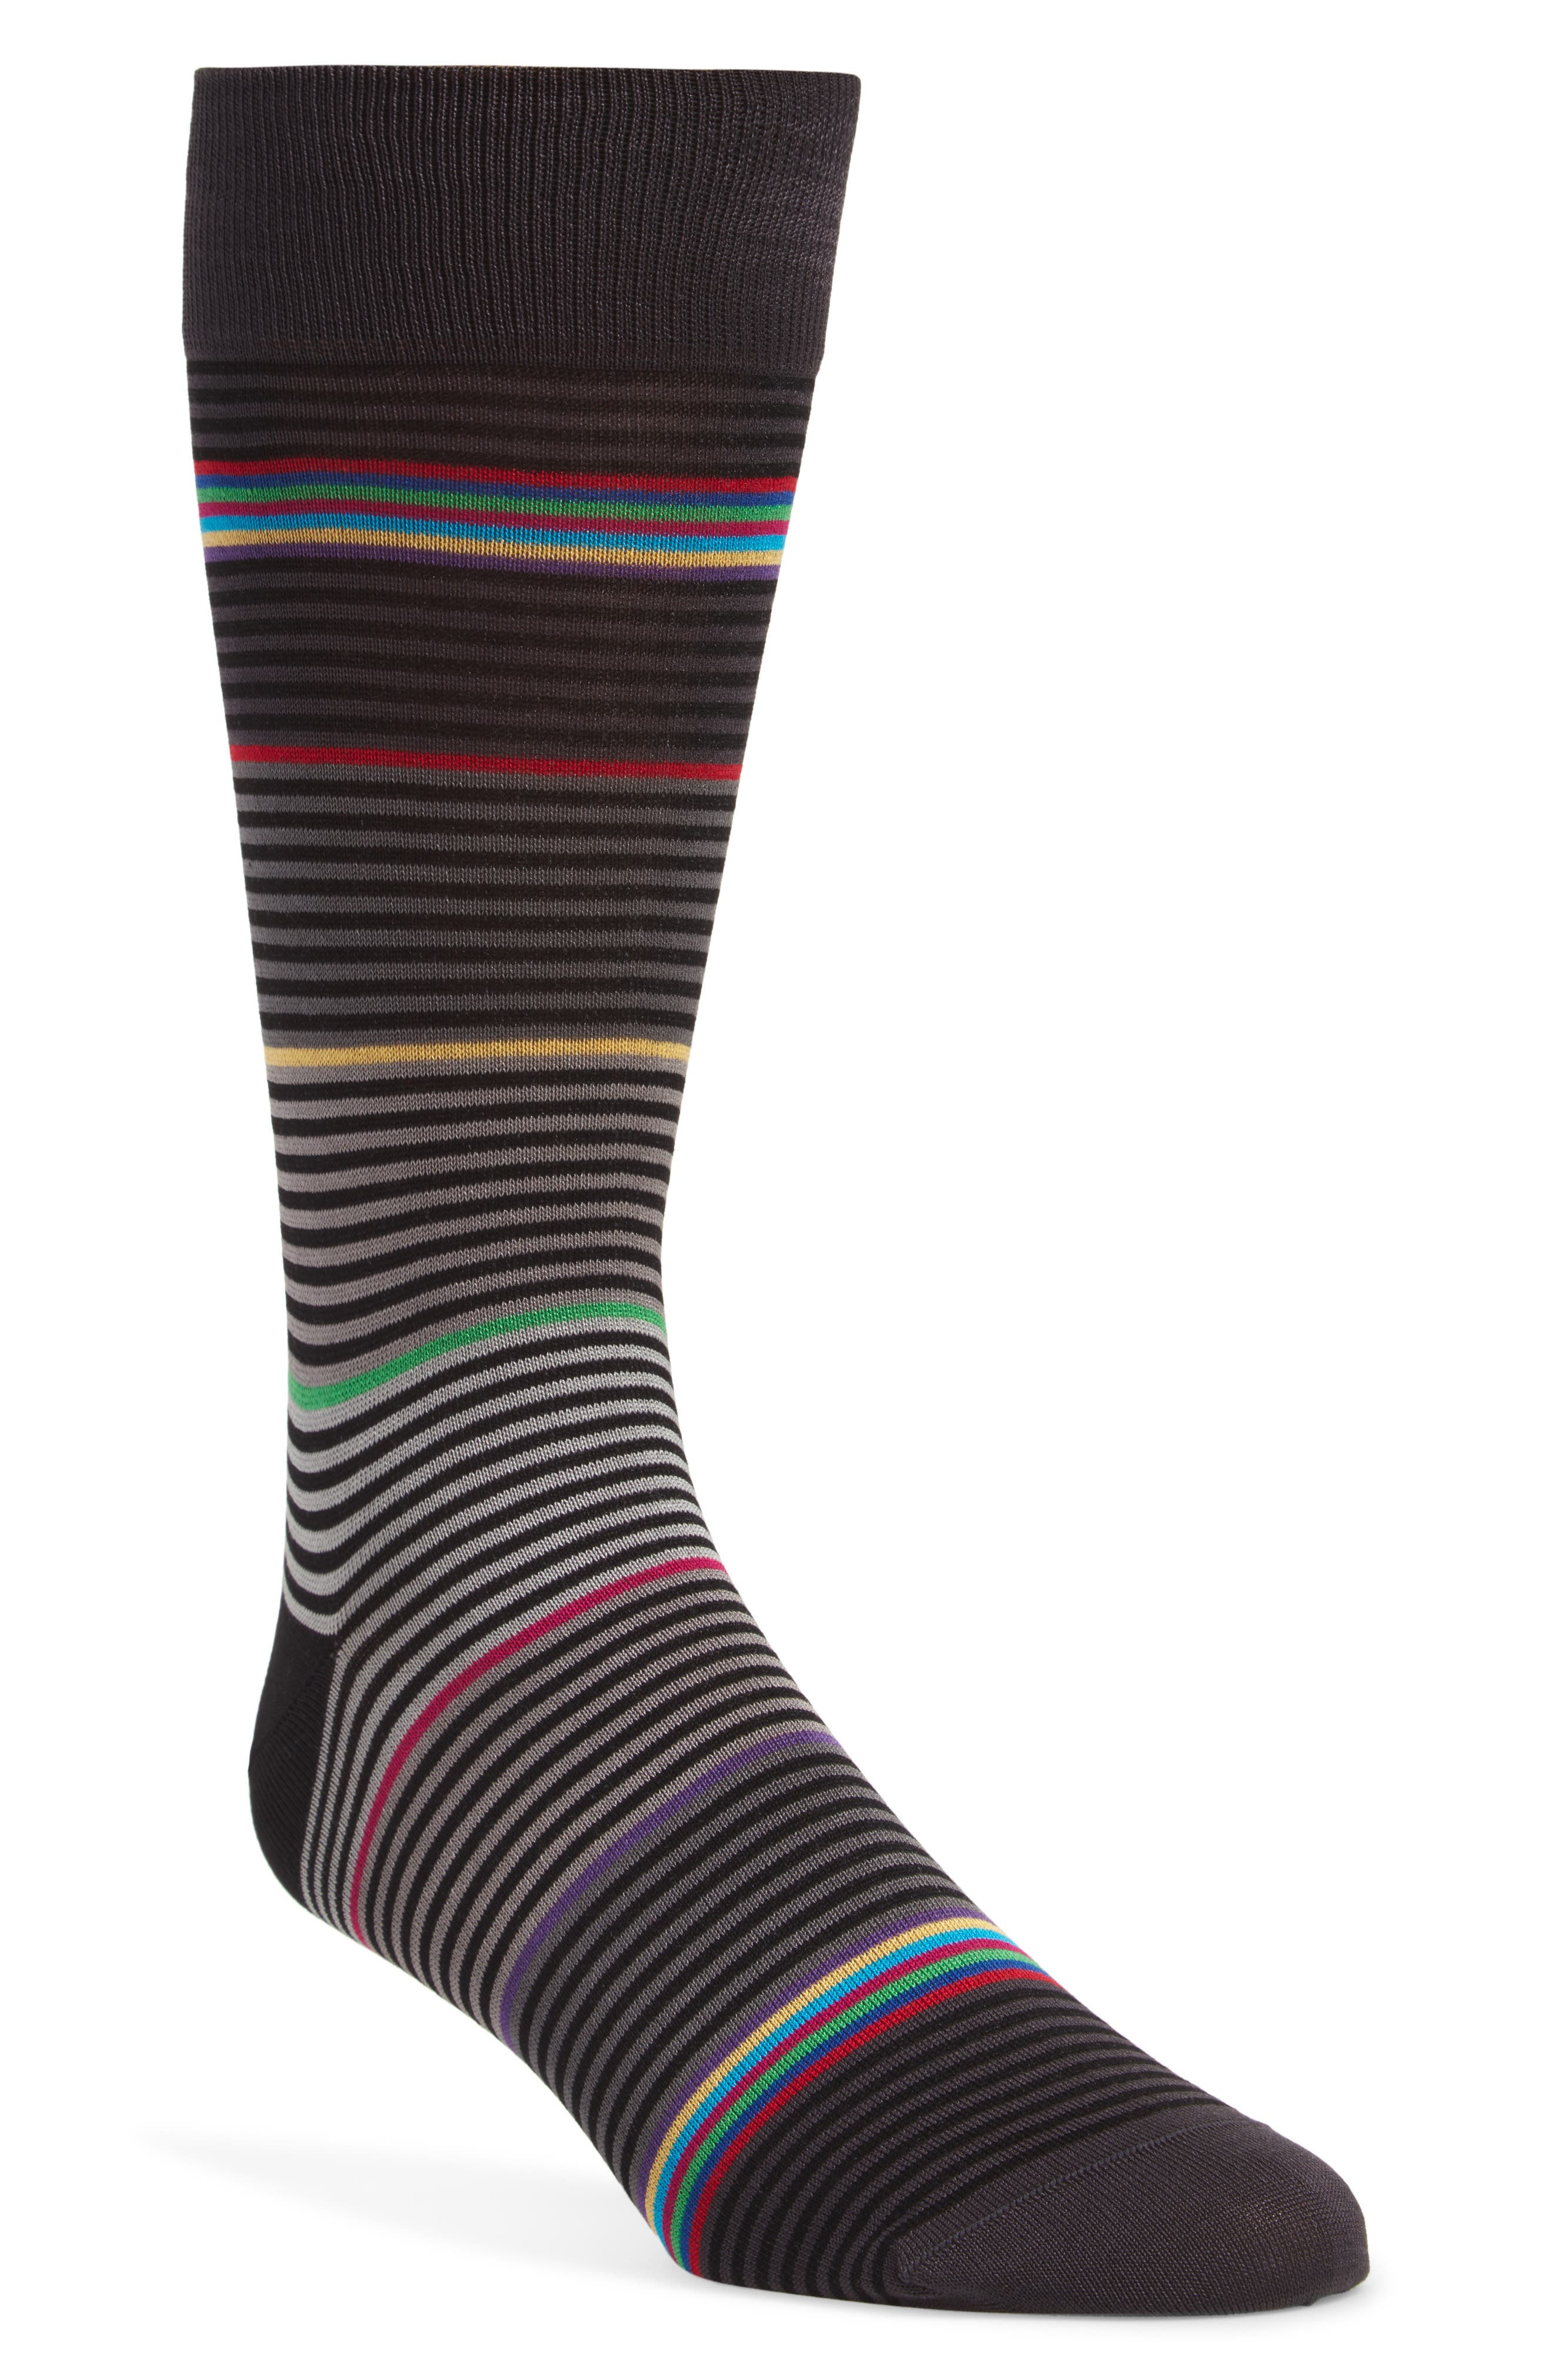 Richly colored stripes pattern cool socks knit from a mercerized cotton blend. Style Name: Bugatchi Stripe Socks. Style Number: 918599. Available in stores.